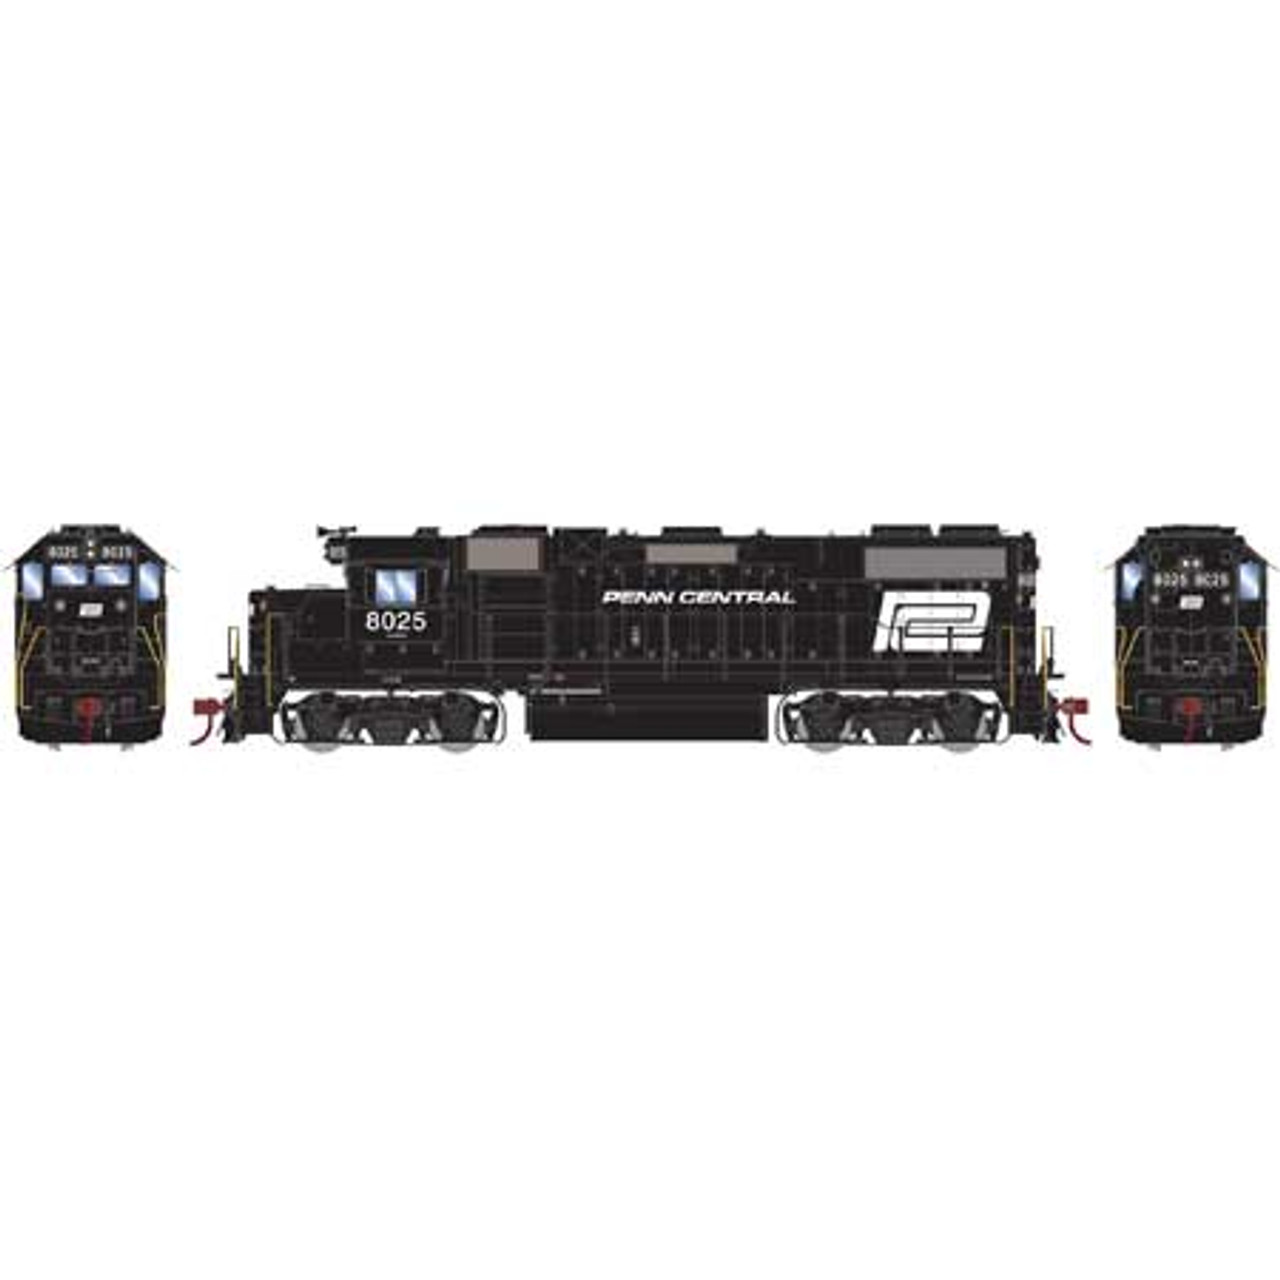 ATHG65472 GP38-2 PC Penn Central #8025 with DCC & Sound Tsunami2  (SCALE=HO)  Part #ATHG65472